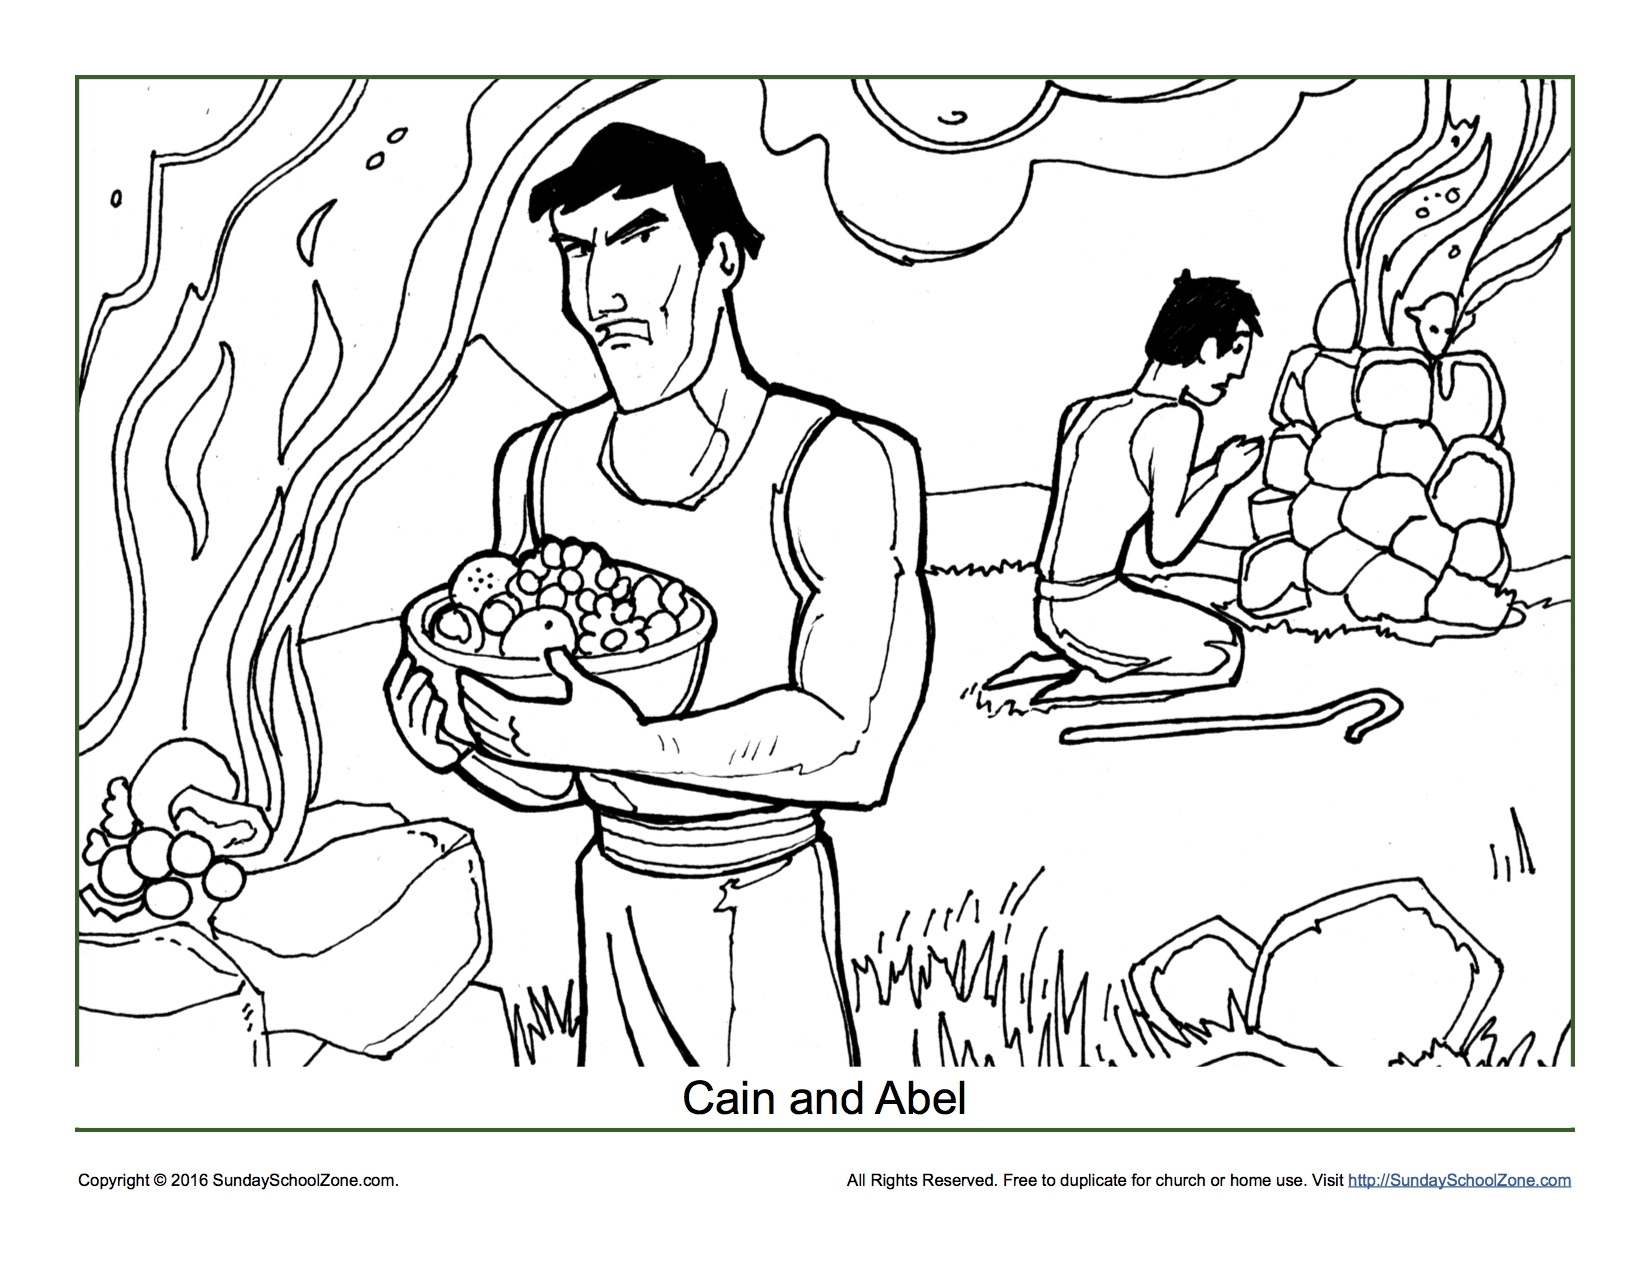 Cain and Abel Coloring Page - Cain and Abel Coloring Worksheet Coloring Pages